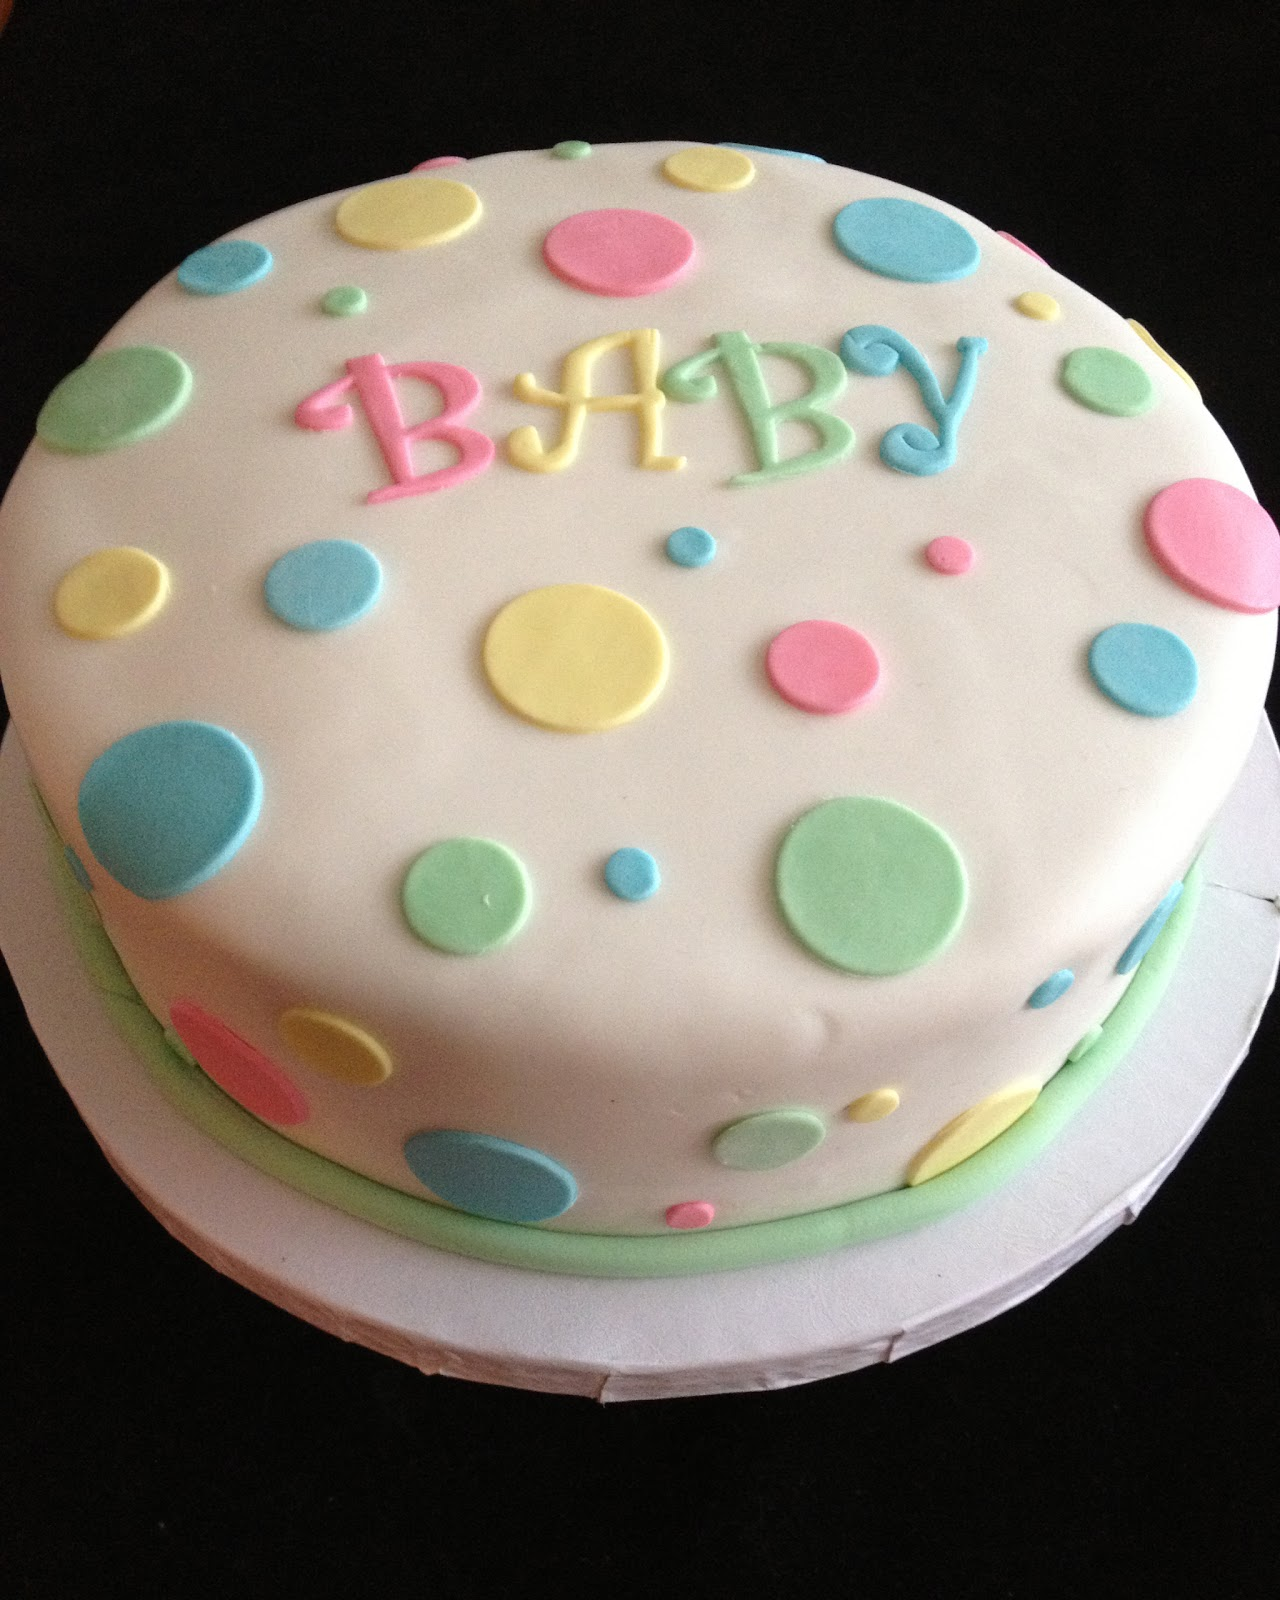 Baby Shower Cakes: Baby Shower Cake Ideas To Make At Home